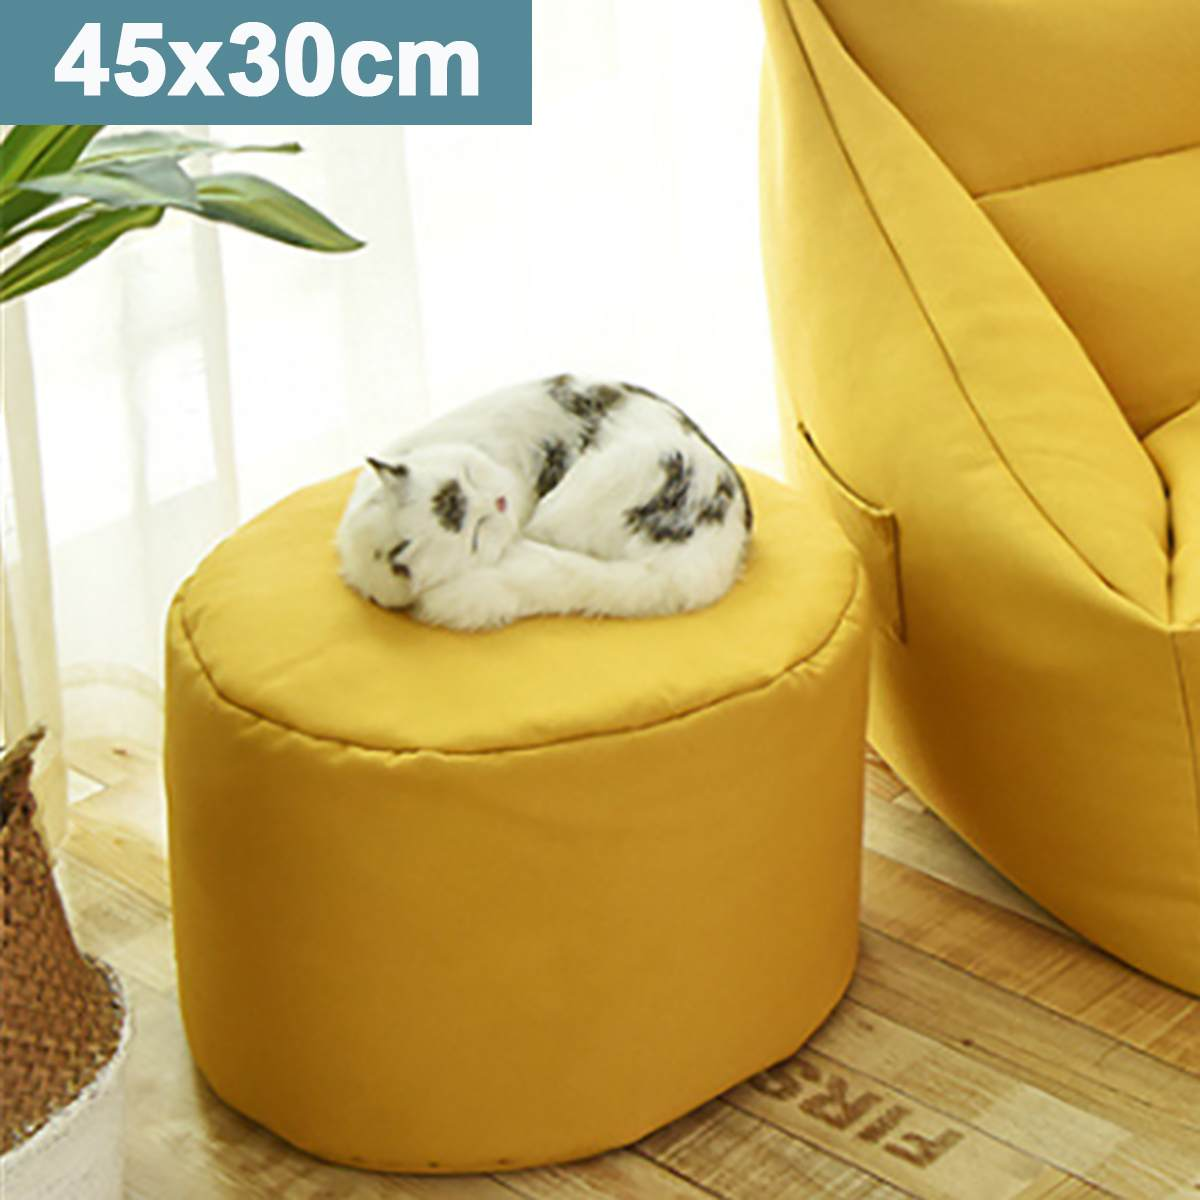 Yellow Large Lazy BeanBag Sofas Waterproof Animal Storage Toy Bean Bag Solid Color Chair Cover Beanbag Sofas Without LiningYellow Large Lazy BeanBag Sofas Waterproof Animal Storage Toy Bean Bag Solid Color Chair Cover Beanbag Sofas Without Lining